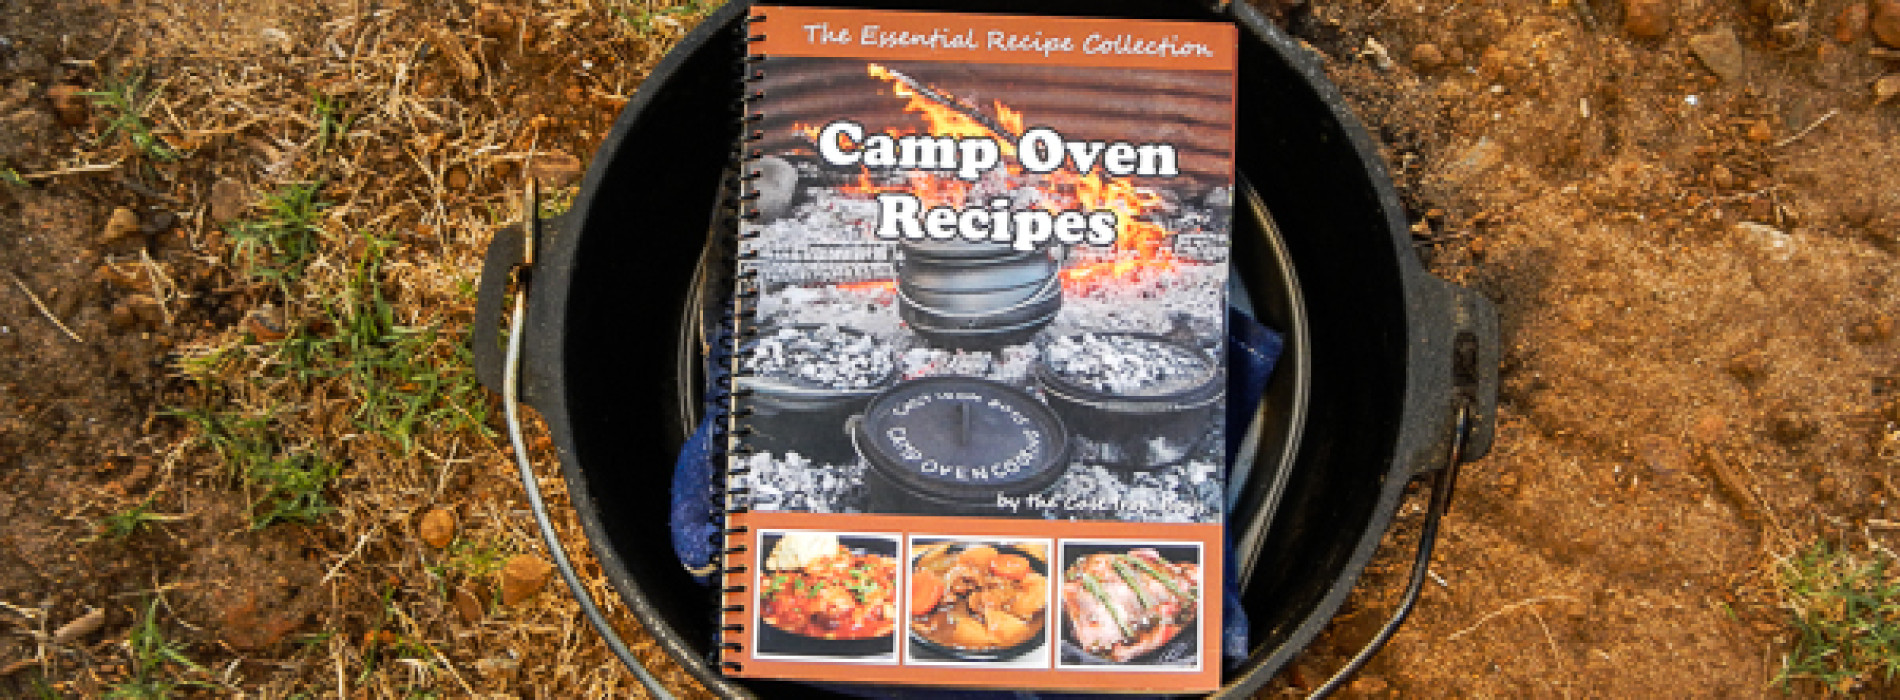 Review: Camp Oven Recipes Book